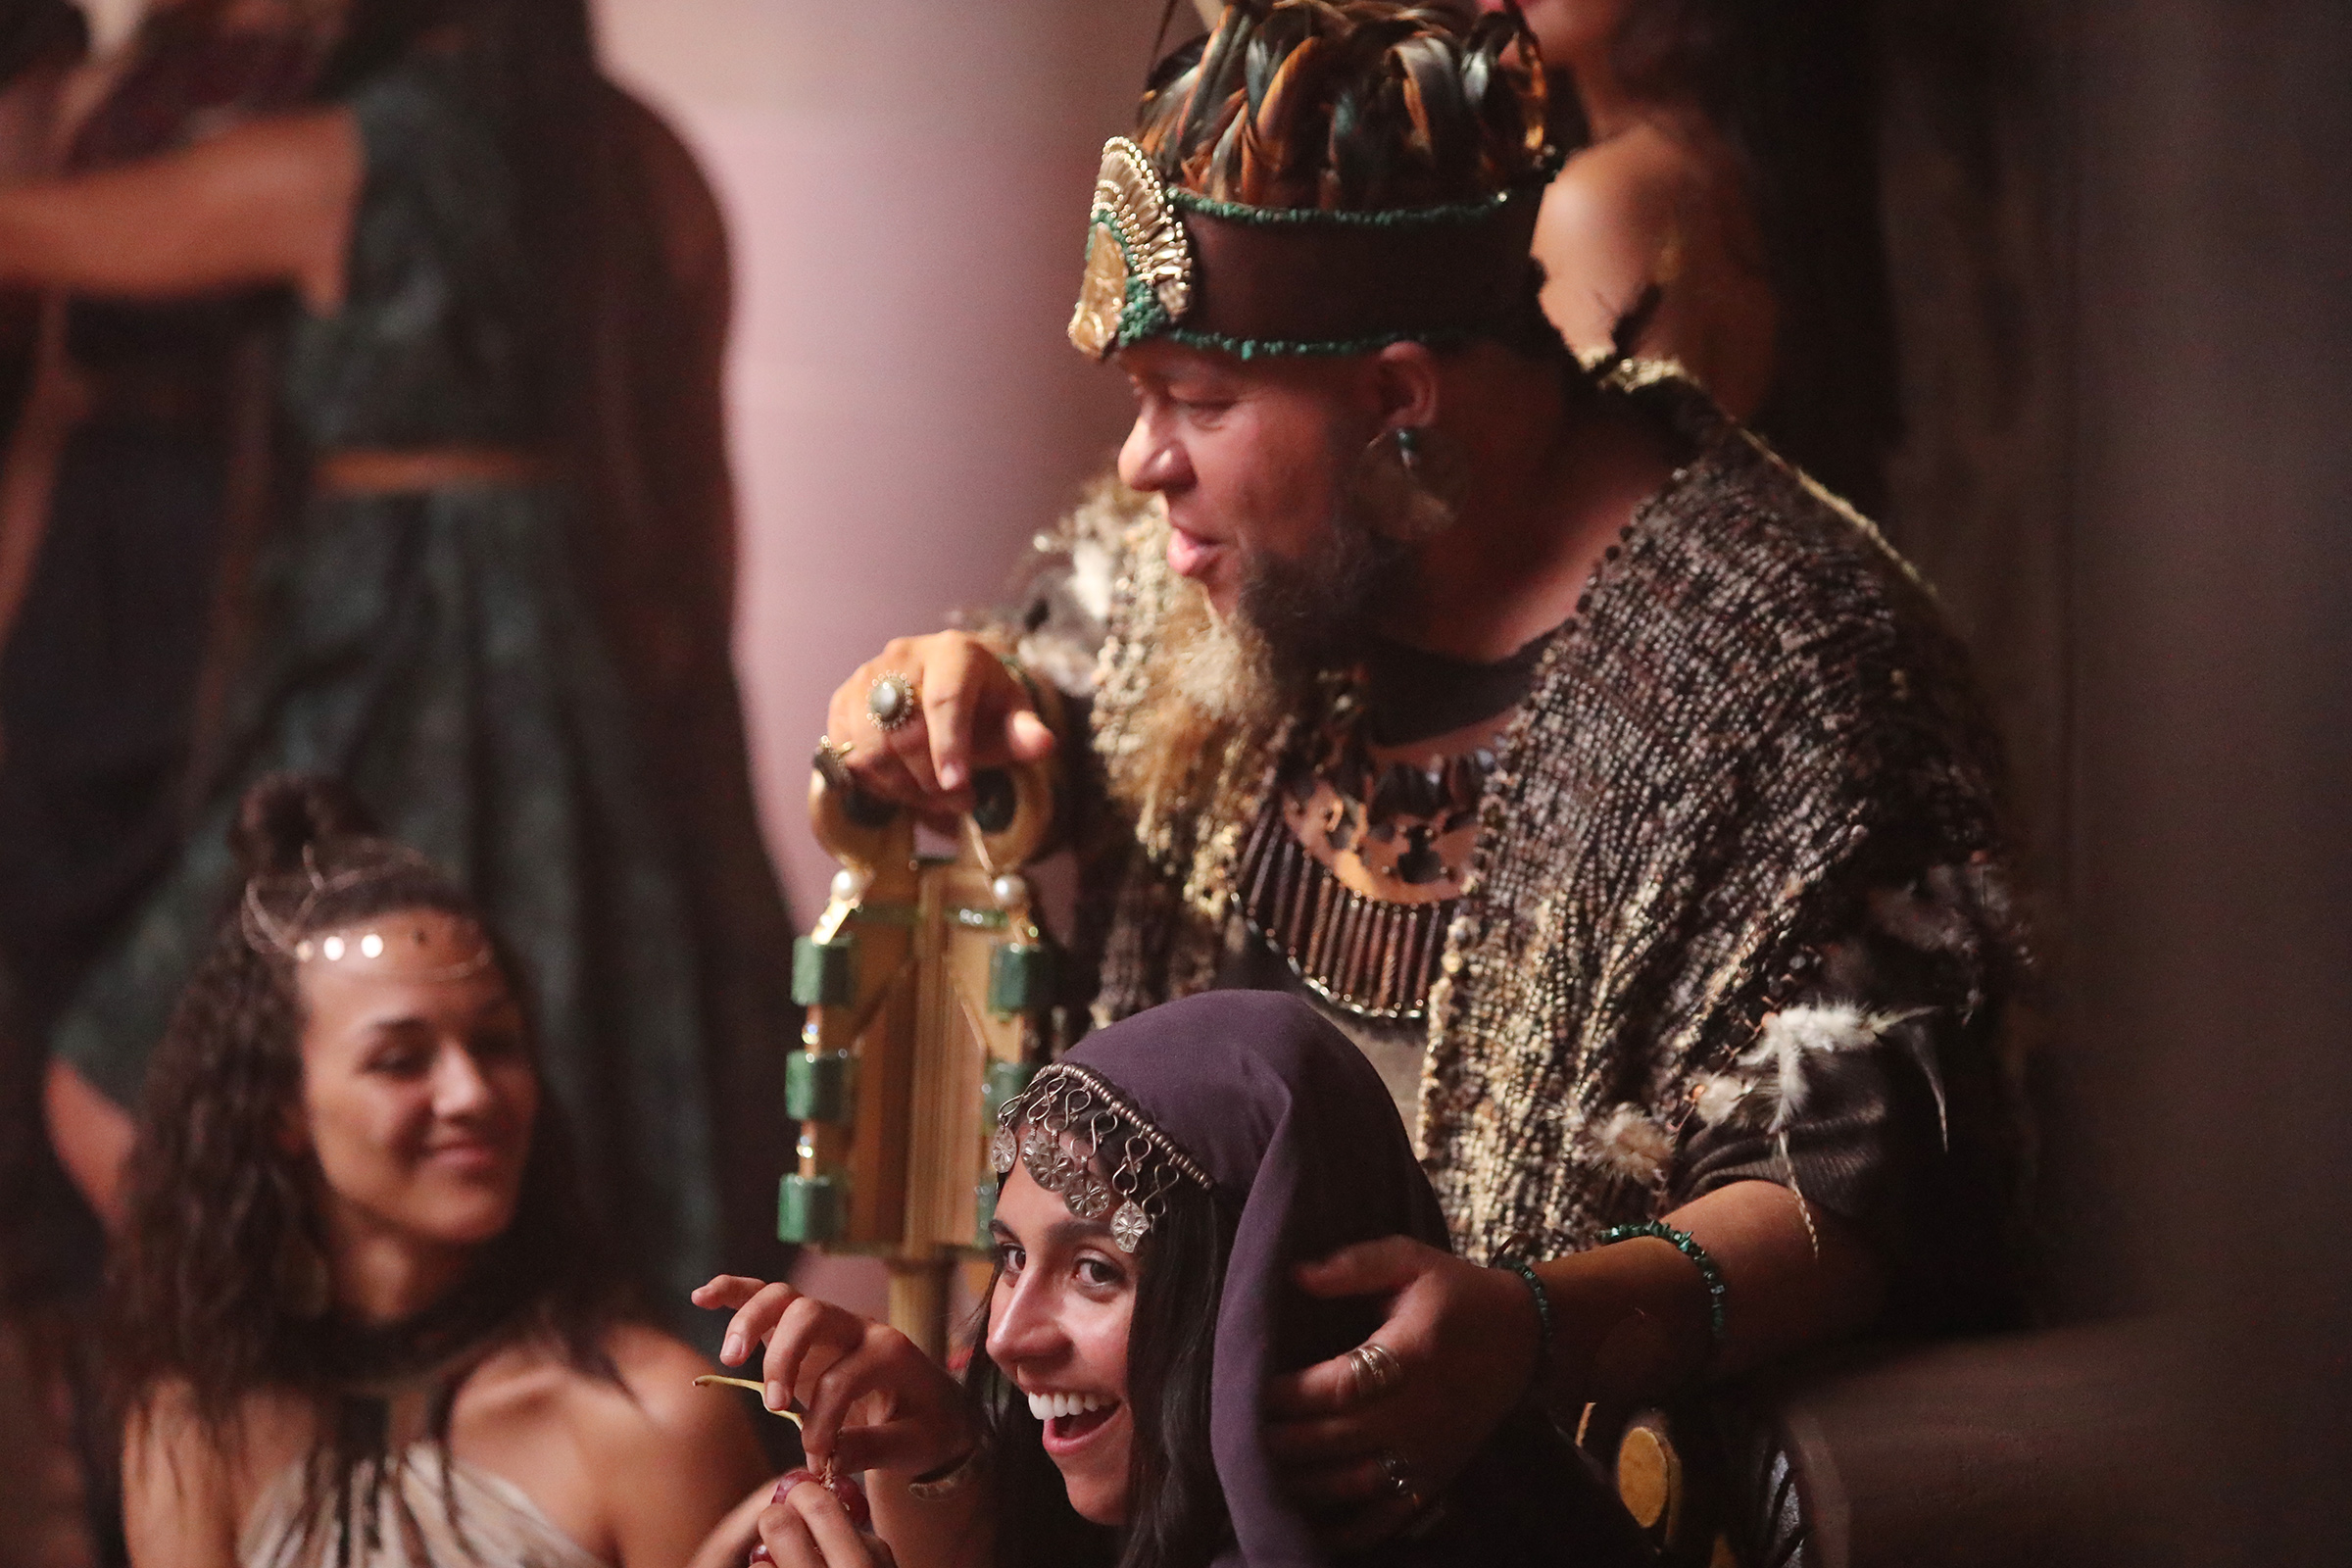 Actors playing King Noah and his concubines talk during filming of the Book of Mormon video series in Provo, Utah, at the Motion Picture Studio on Tuesday, Sept. 3, 2019.